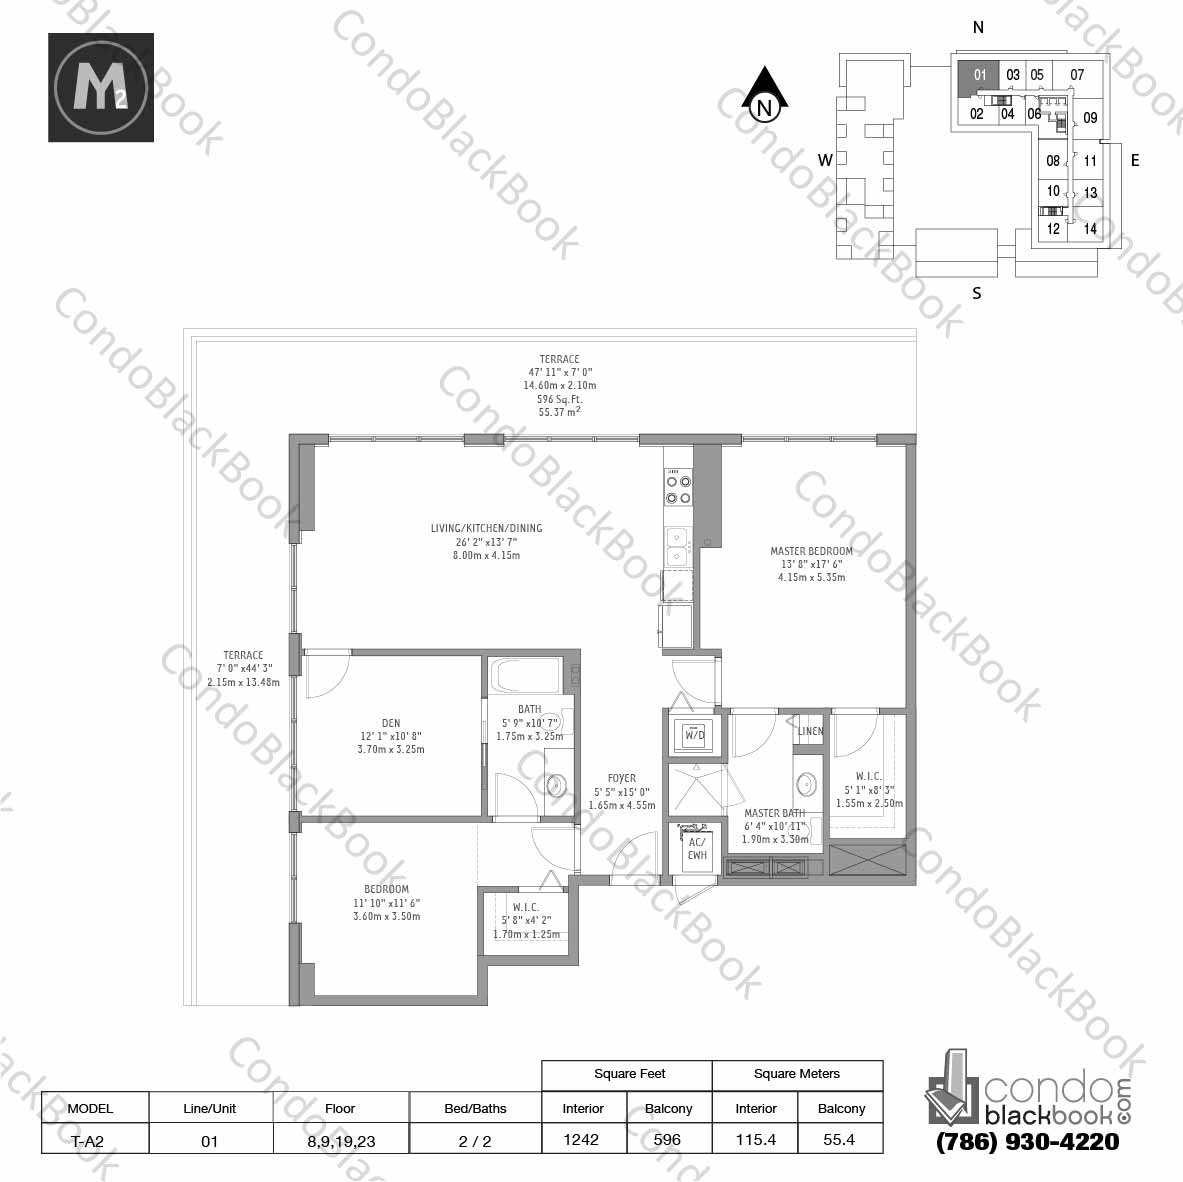 Floor plan for Midtown 2 Midtown Miami, model T-A2, line 01, 2 / 2 bedrooms, 1242 sq ft